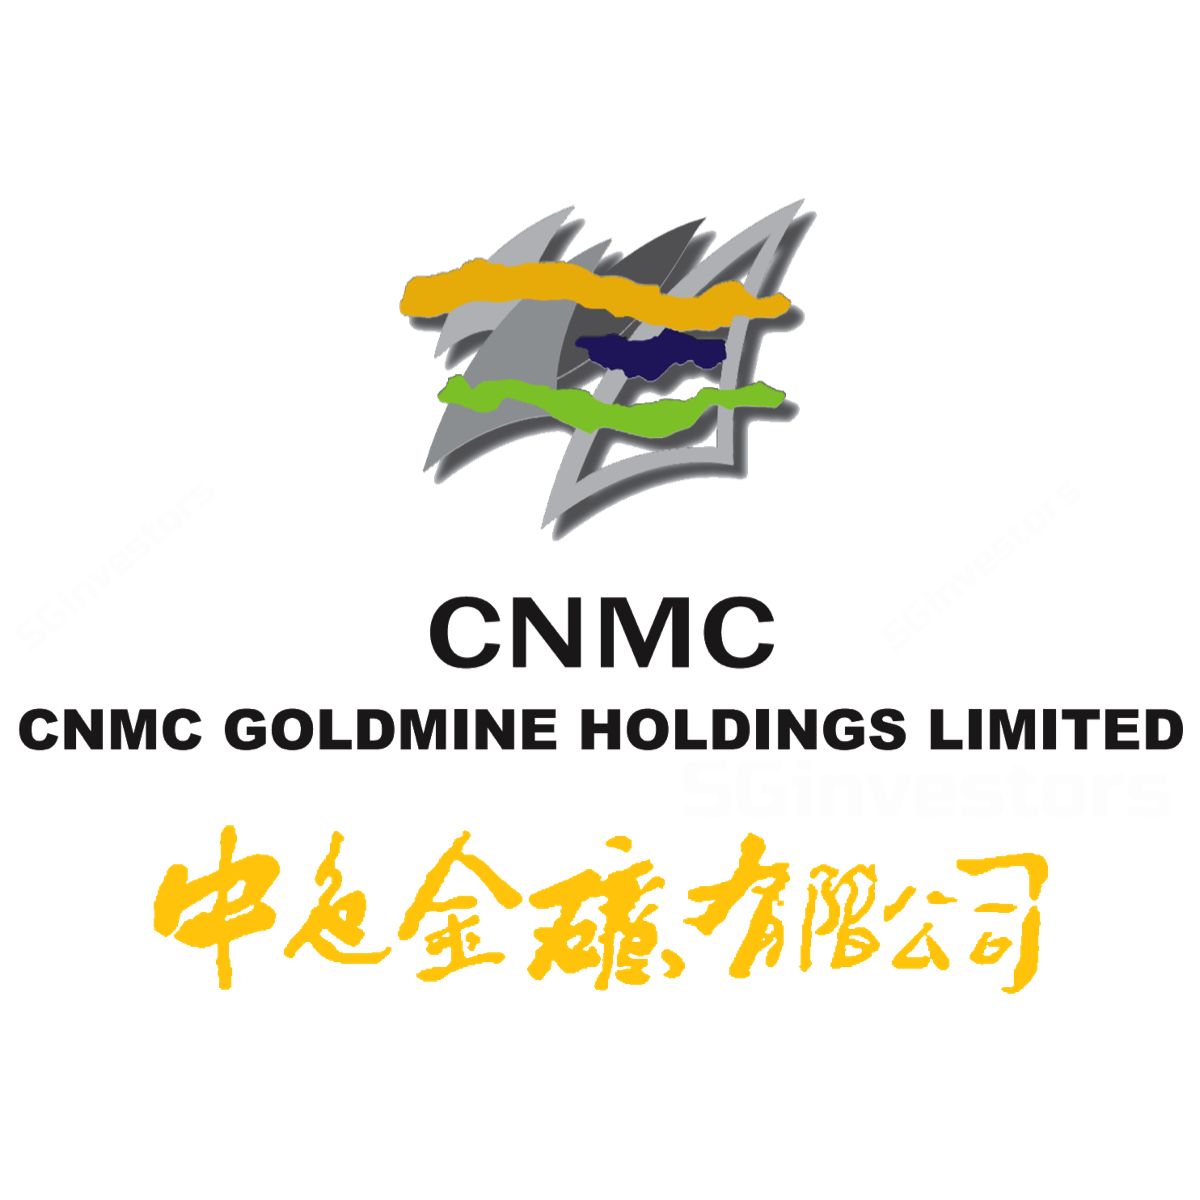 CNMC Goldmine Holdings Limited - Phillip Securities 2018-02-28: Look Forward To A Turnaround This Year